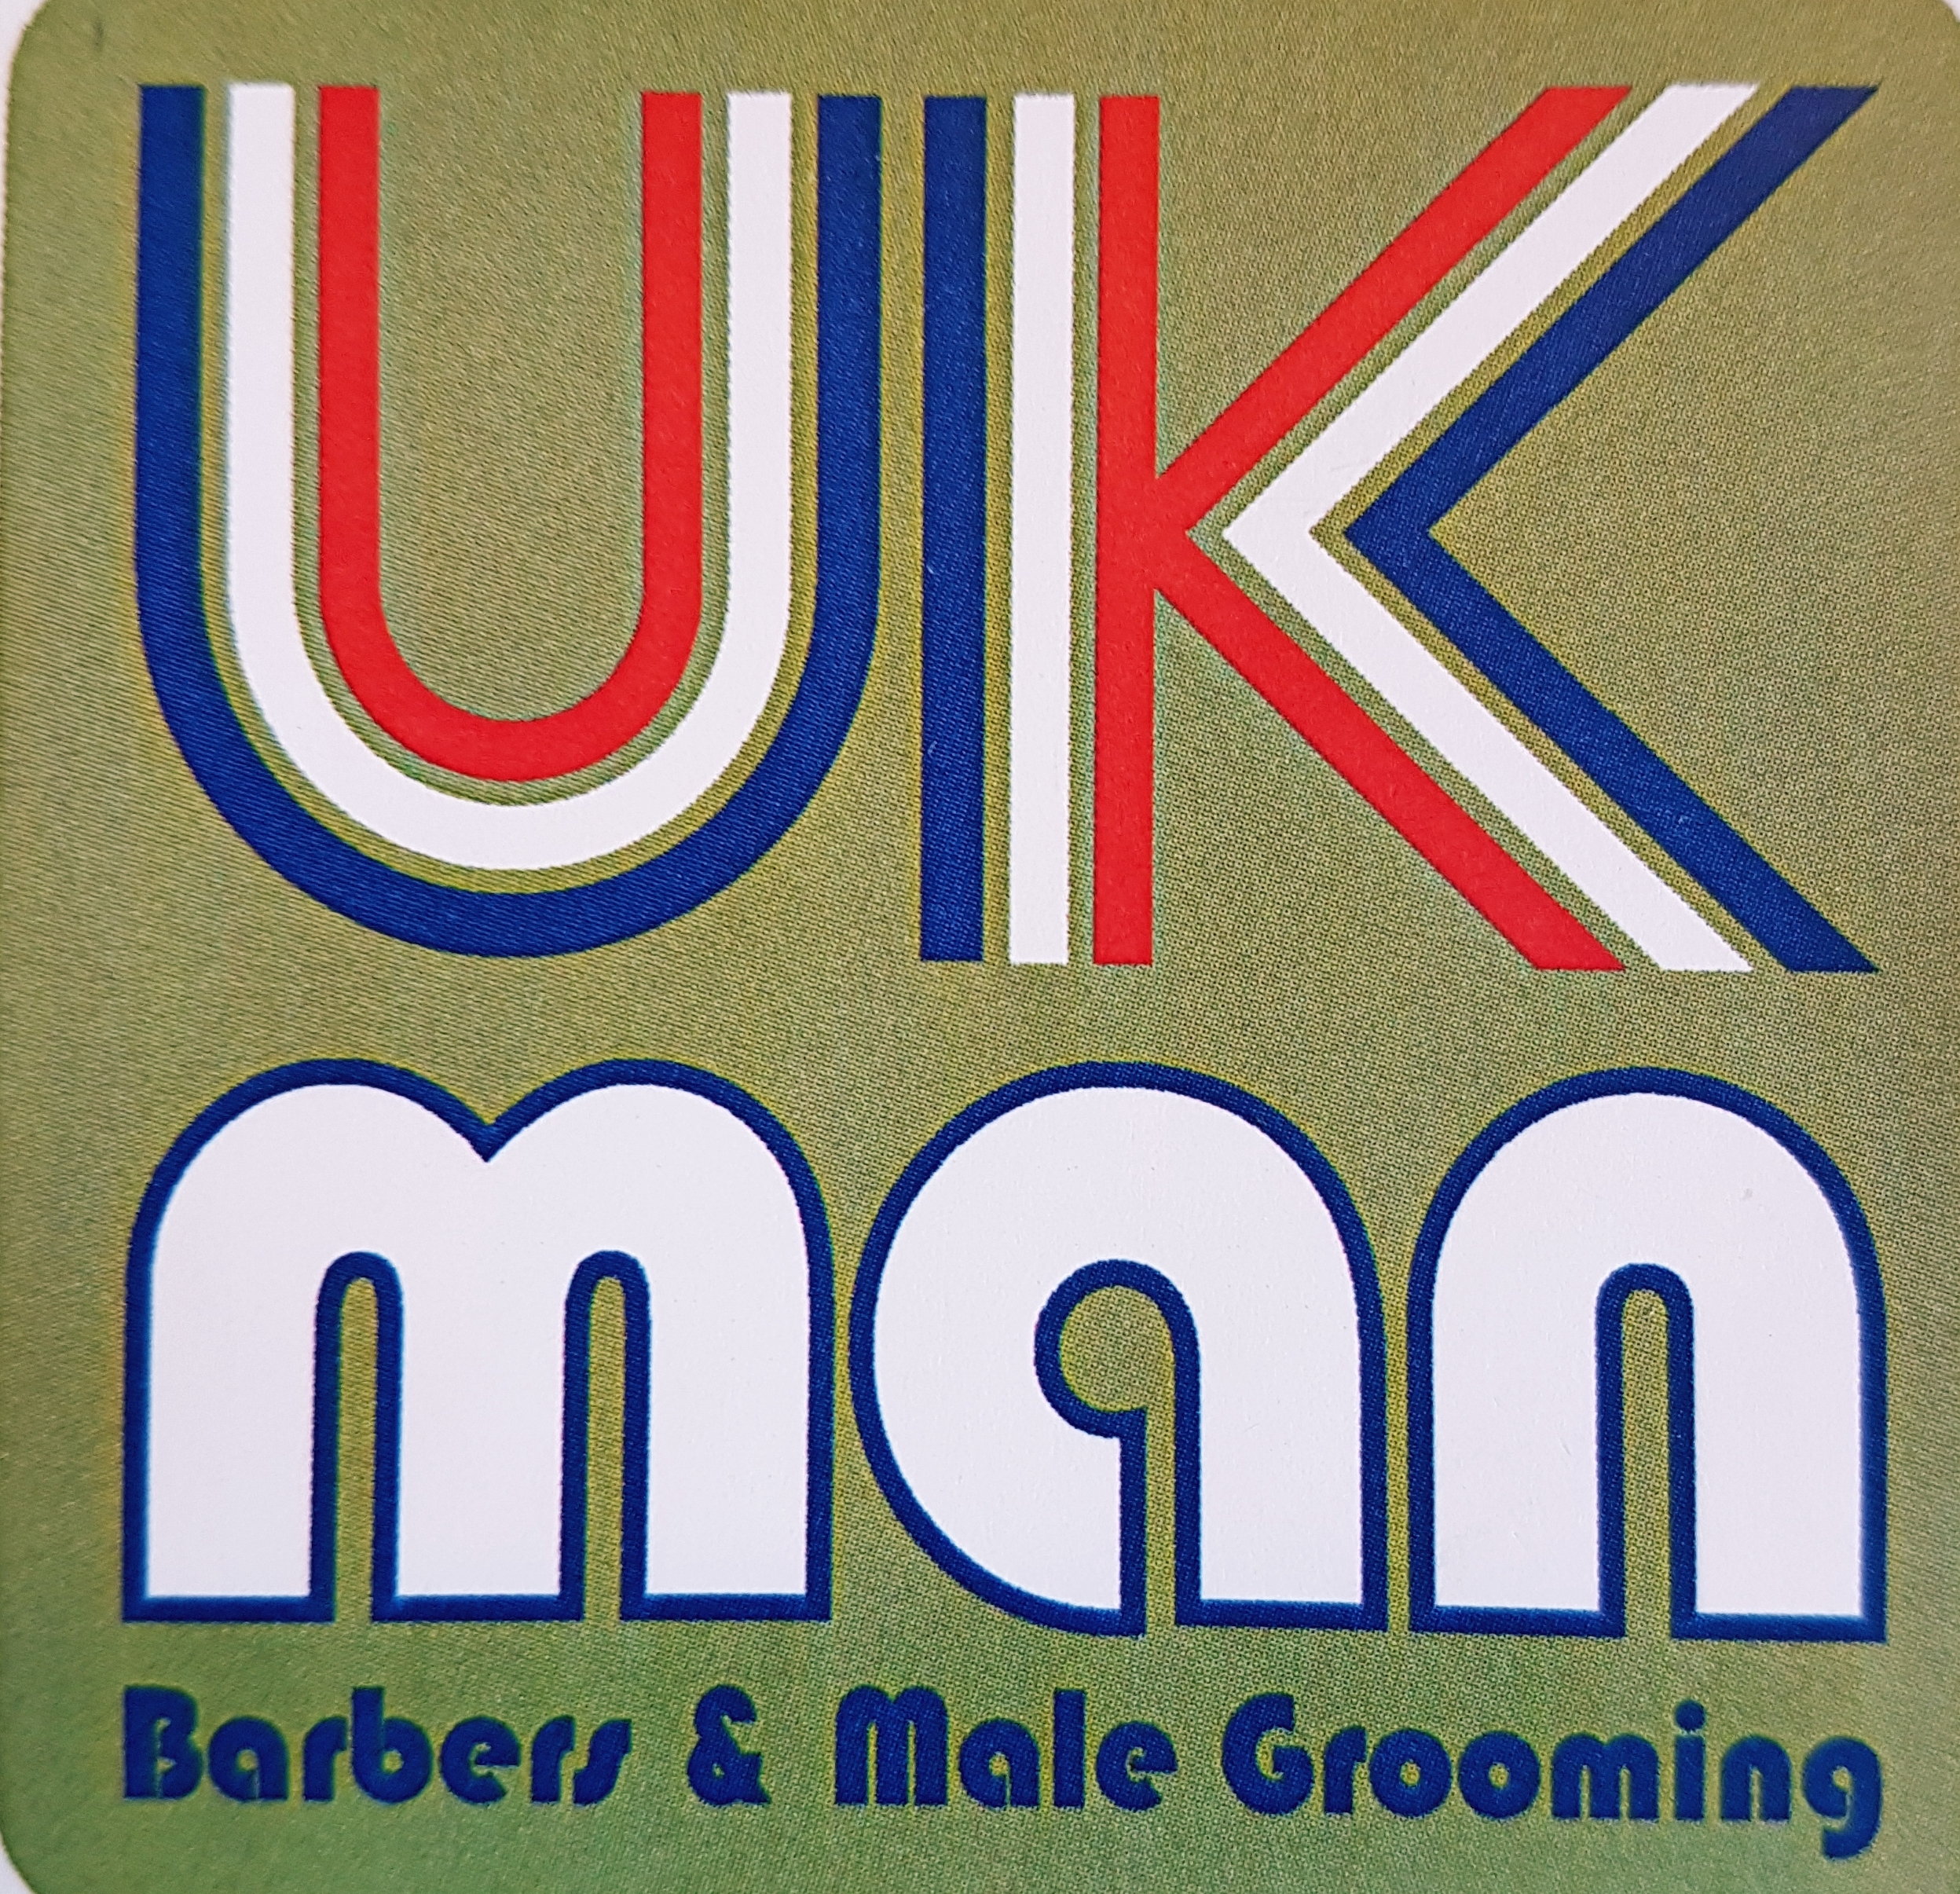 UK Man Barbers